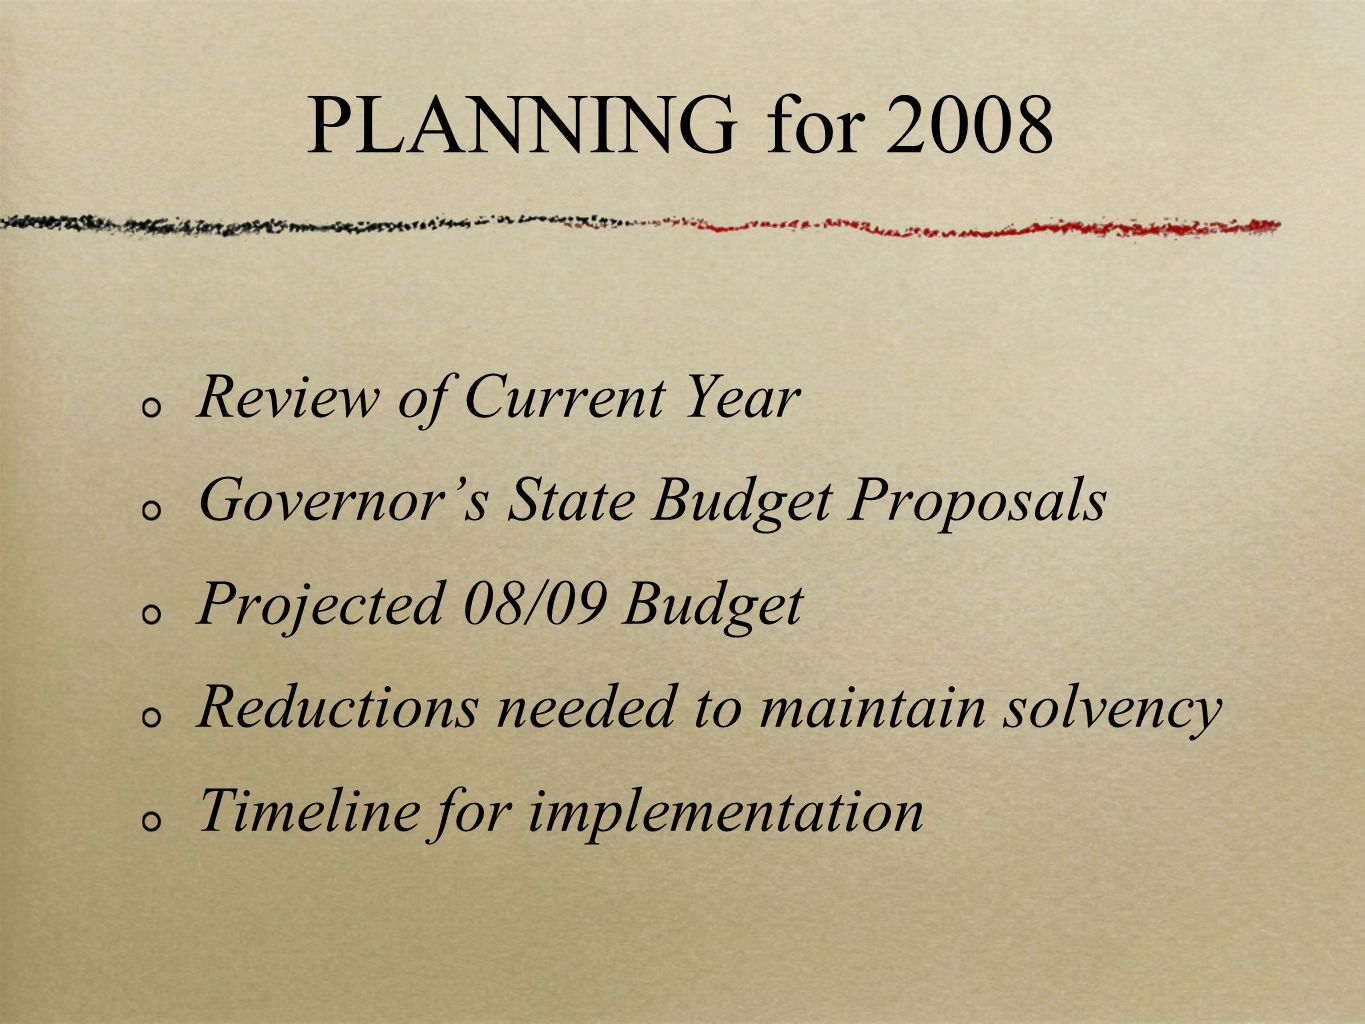 PLANNING for 2008 Review of Current Year Governor's State Budget Proposals Projected 08/09 Budget Reductions needed to maintain solvency Timeline for implementation